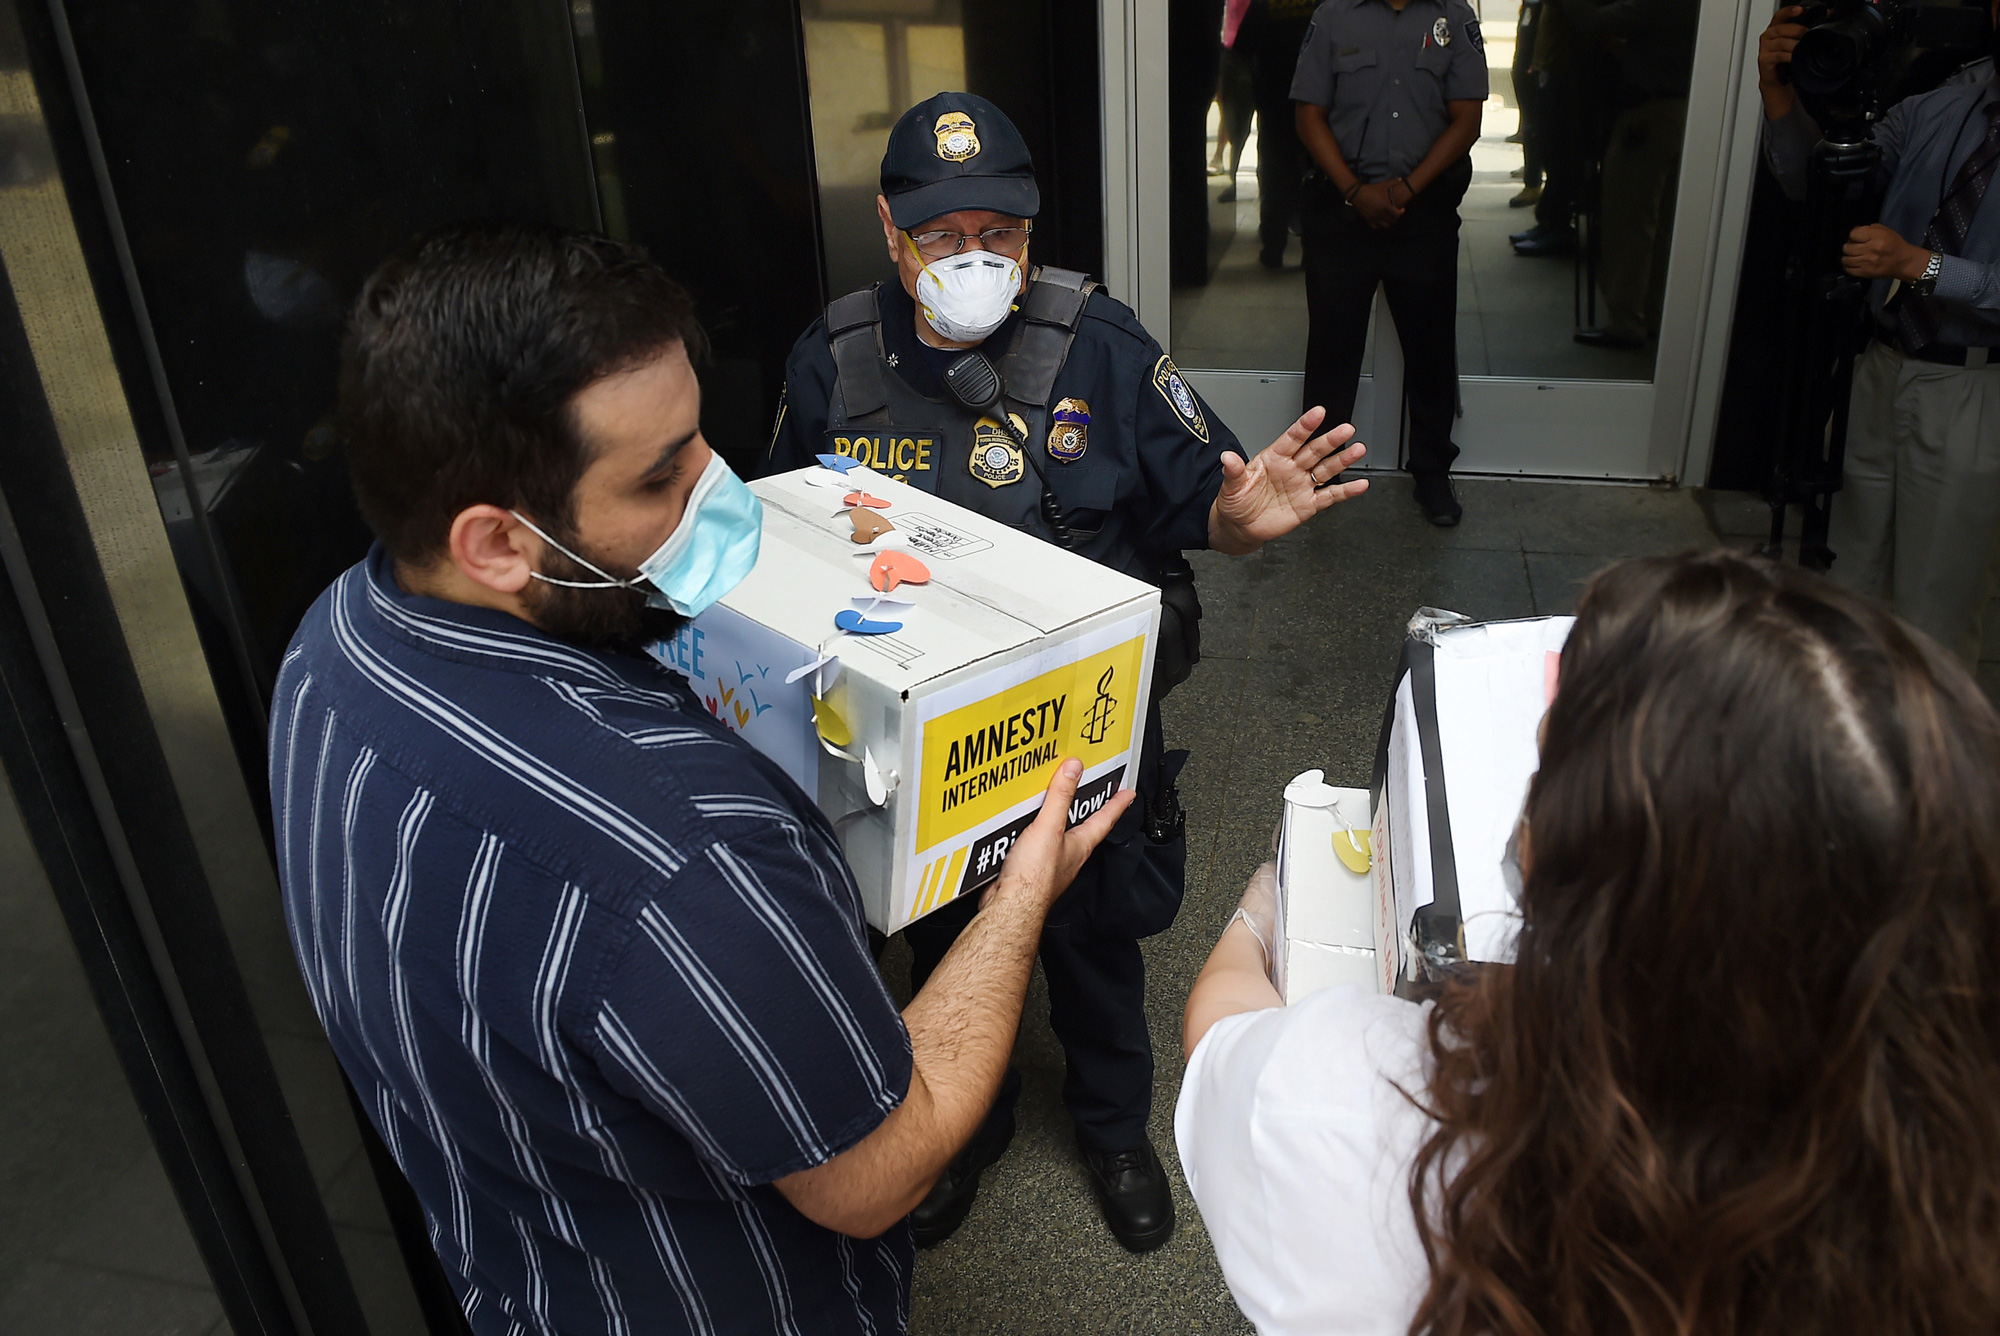 Activists try to deliver a petition to demand the release of immigrants families in detention centers at risk during the coronavirus pandemic, outside the Immigration and Customs Enforcement (ICE) headquarters in Washington, DC, on July 17, 2020. - Lawmakers have raised concerns about the spread of the virus inside detention centers across the country as more than 3,000 immigrants in ICE custody have tested positive for COVID-19. (Photo by Olivier DOULIERY / AFP) (Photo by OLIVIER DOULIERY/AFP via Getty Images)